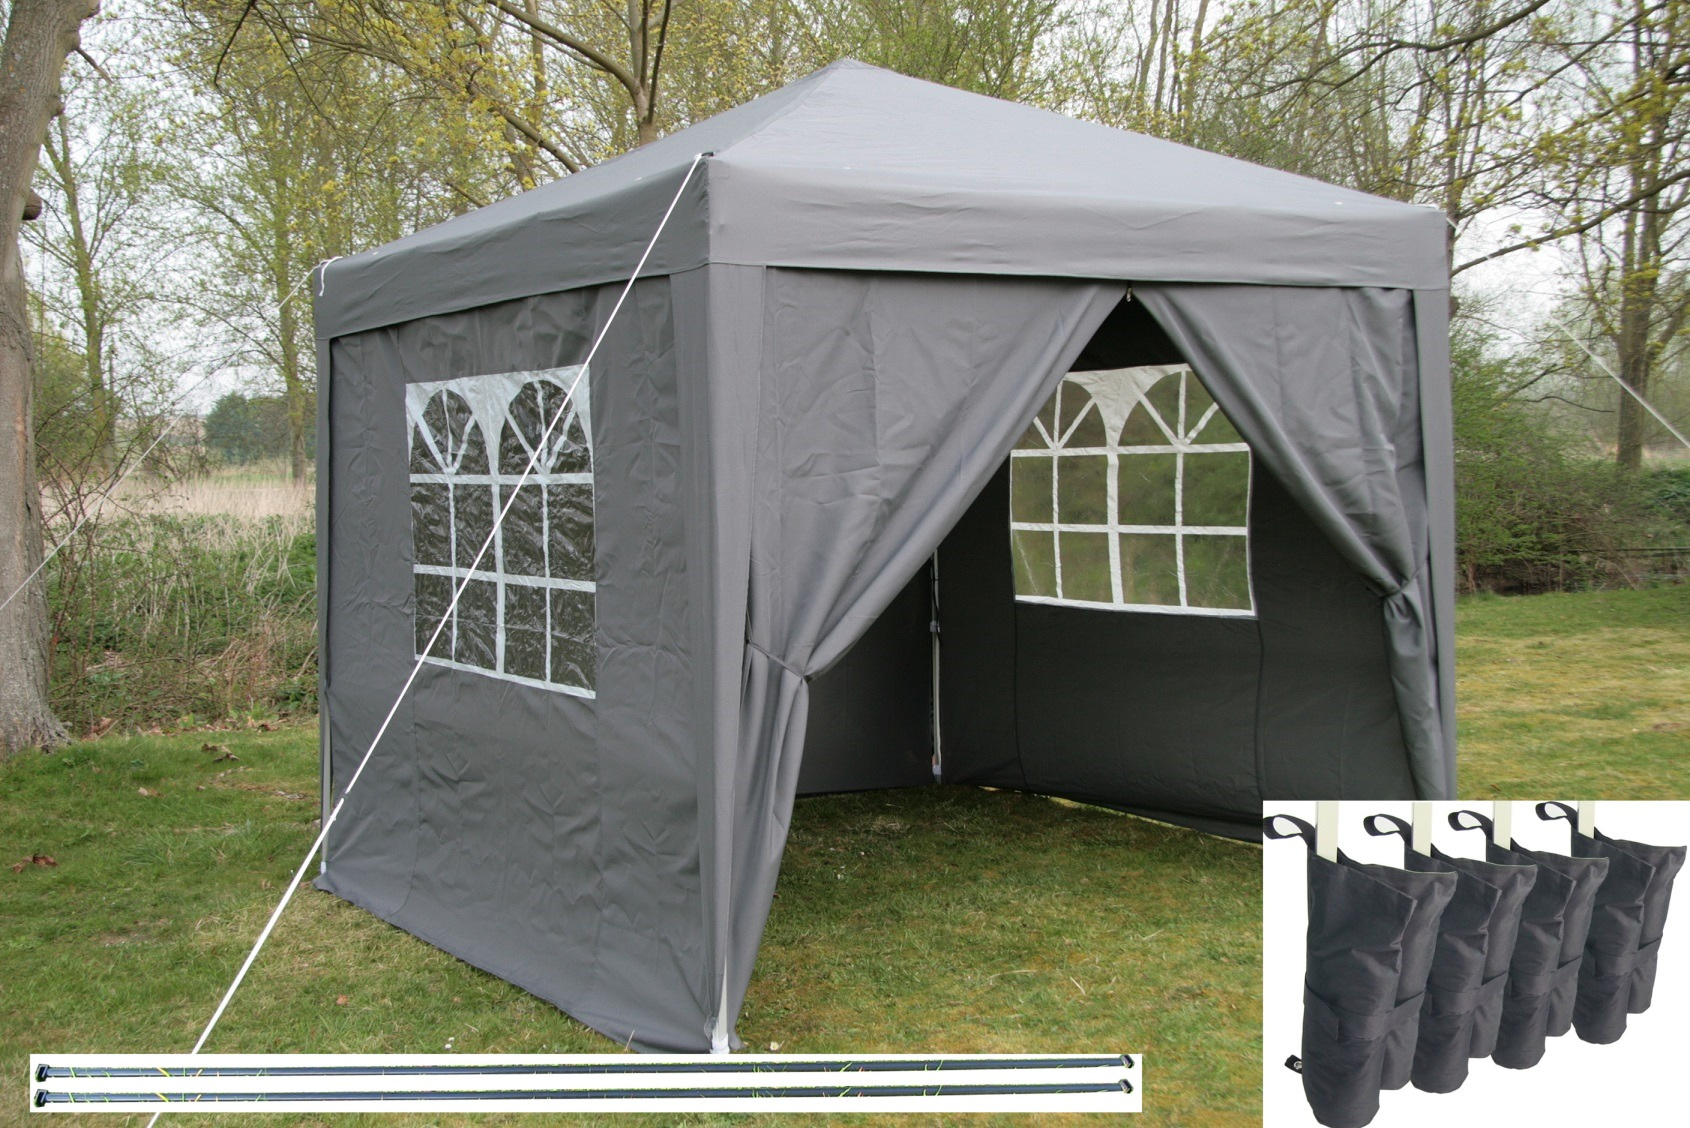 airwave pop up gazebo tanche pavillon de jardin. Black Bedroom Furniture Sets. Home Design Ideas